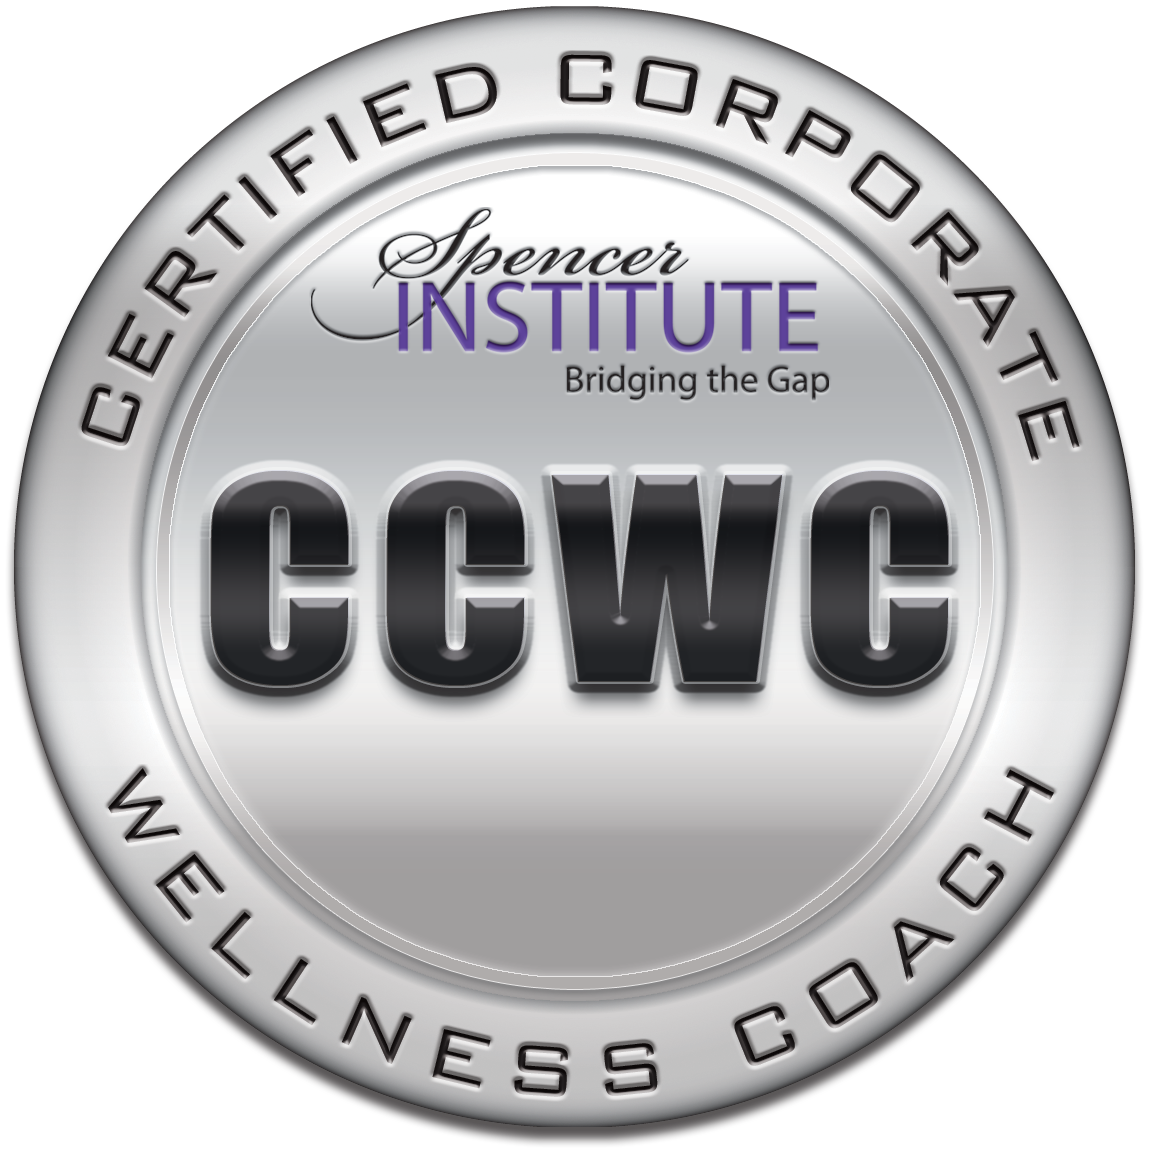 Spencer institutes life strategies coach certification provides certified green living coachgreen careers xflitez Image collections